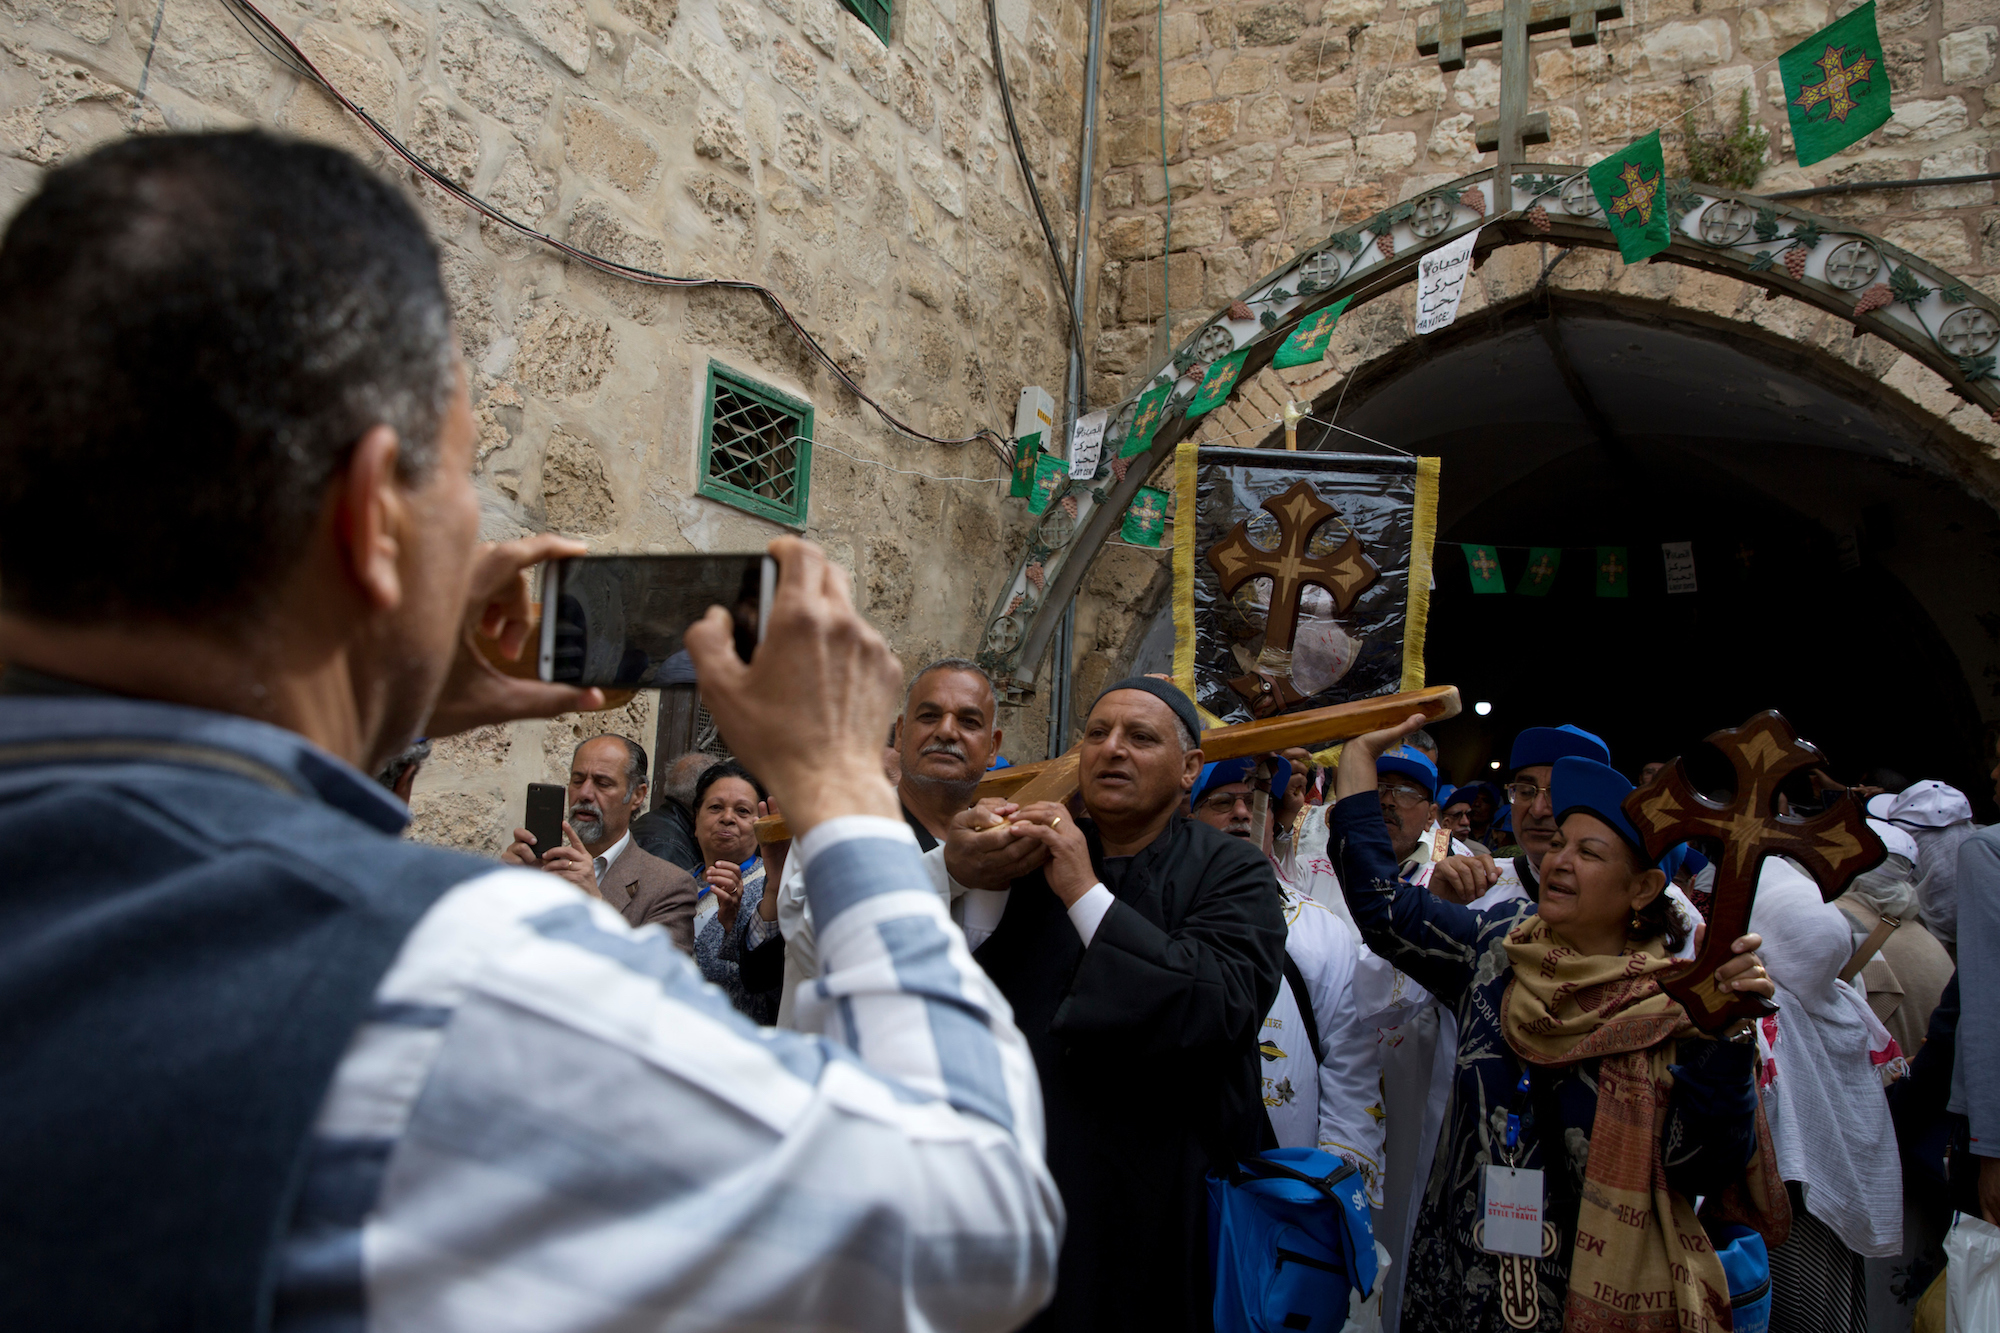 "Christian pilgrims walk along the Via Dolorosa, or ""The Way of Sorrow"" in the Old City of Jerusalem on Good Friday, April 14, 2017. Every year, thousands of Christians from around the world flock to the region to commemorate Easter, but residents say they hardly interact with Palestinian Christians who have carried the faith's tradition in the Holy Land. (Photo by Heidi Levine/GroundTruth)"